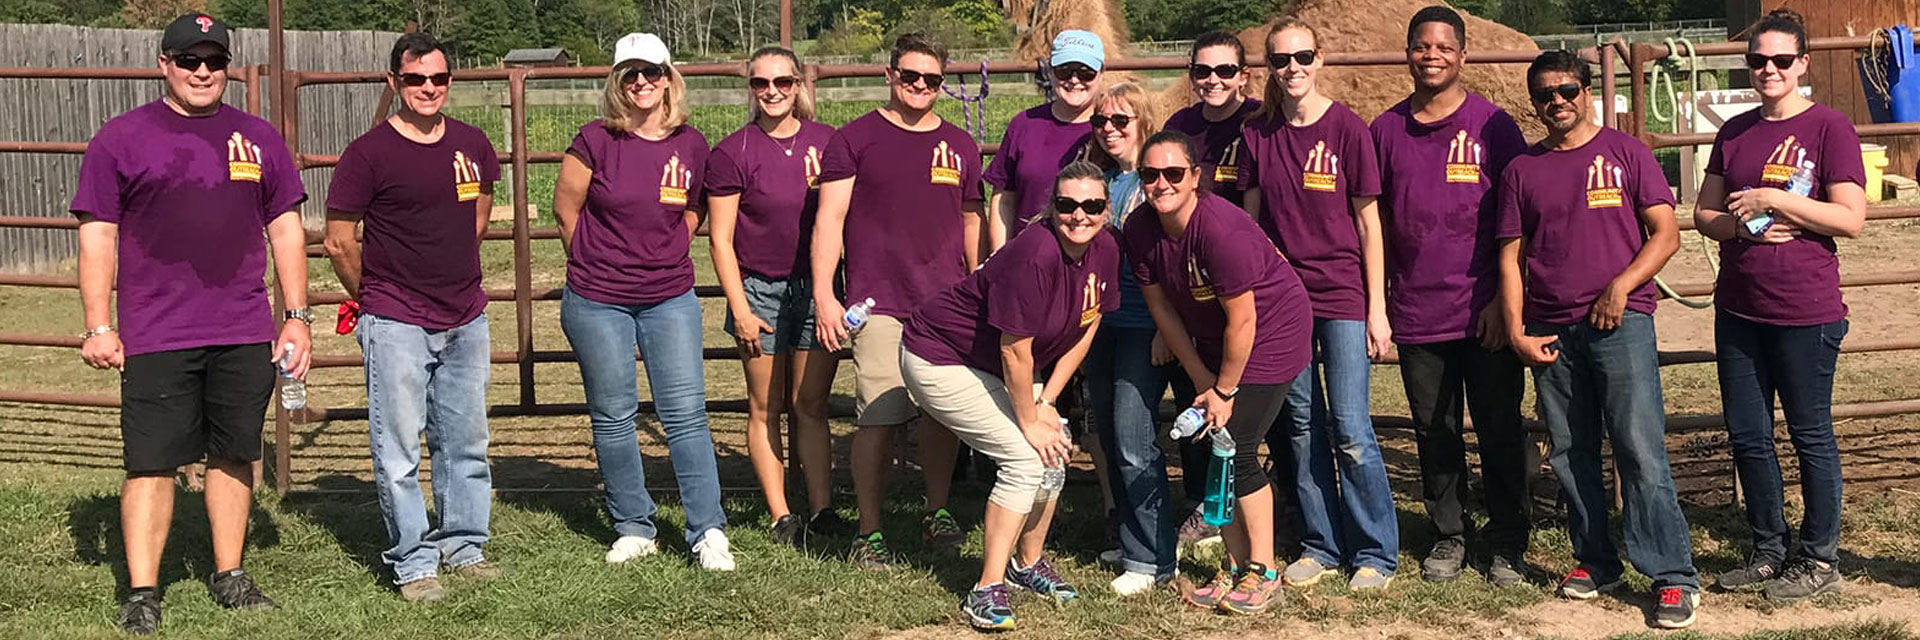 A large group of Penn Mutual associates, in purple shirts, posing together on a farm.